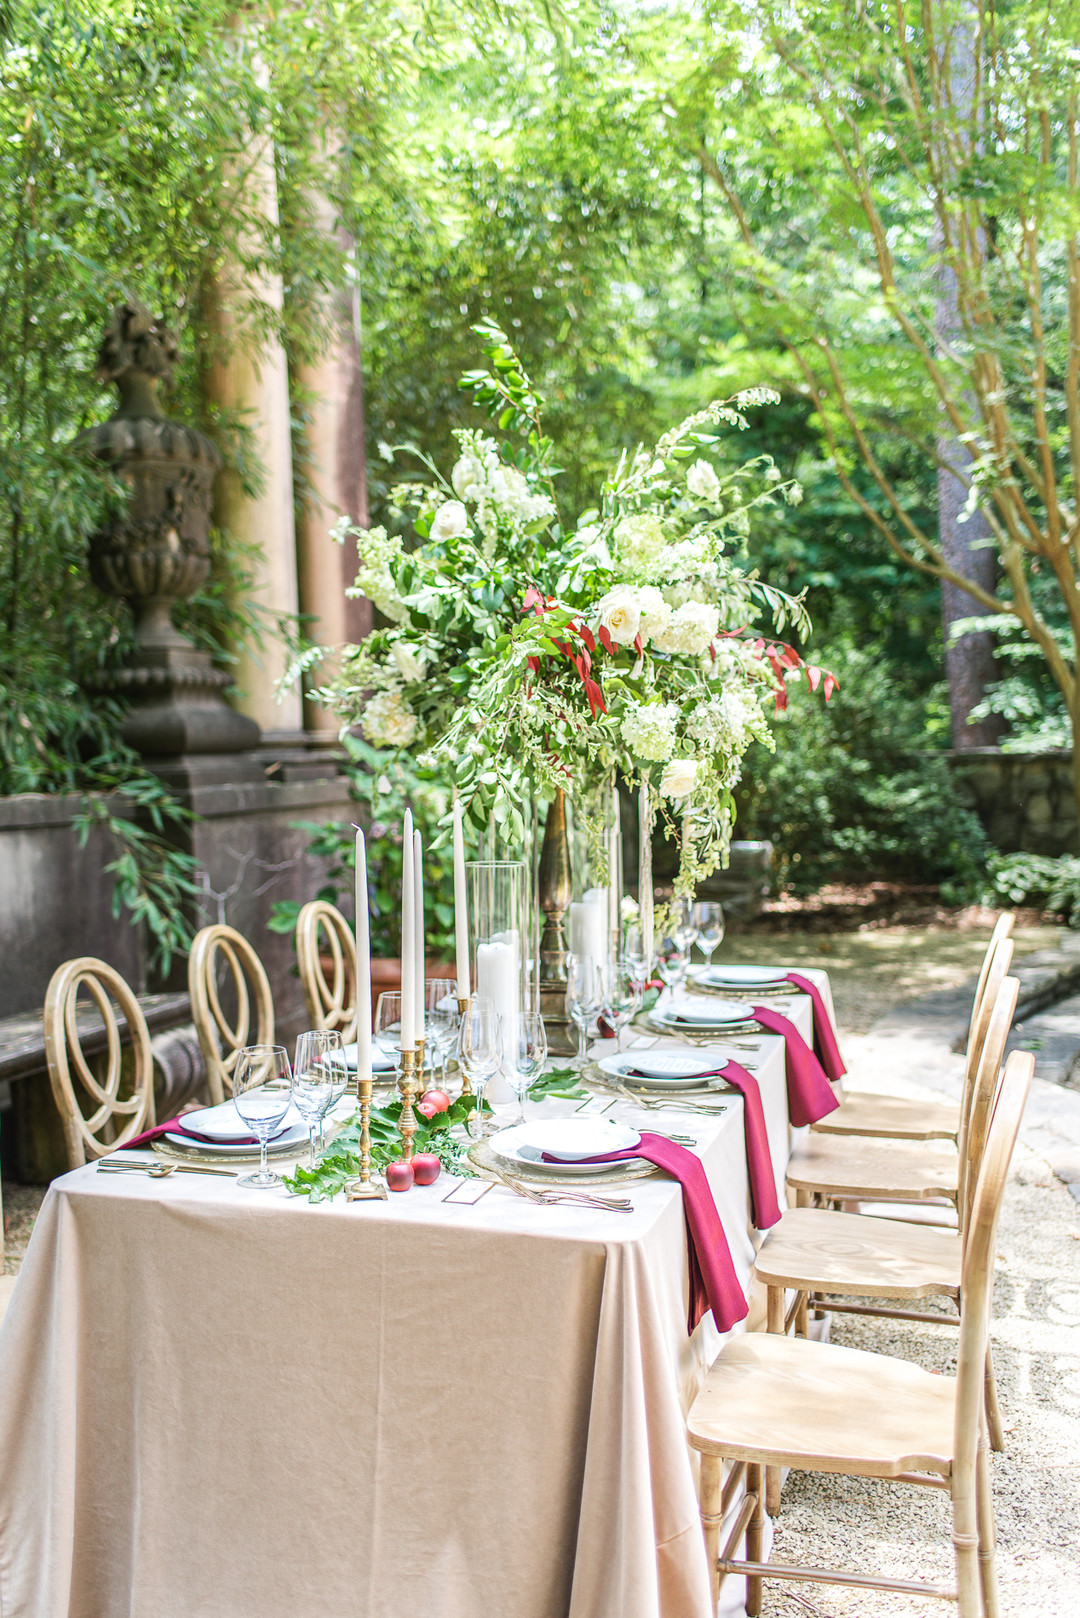 beige table lines with red napkins and a large greenery centerpiece